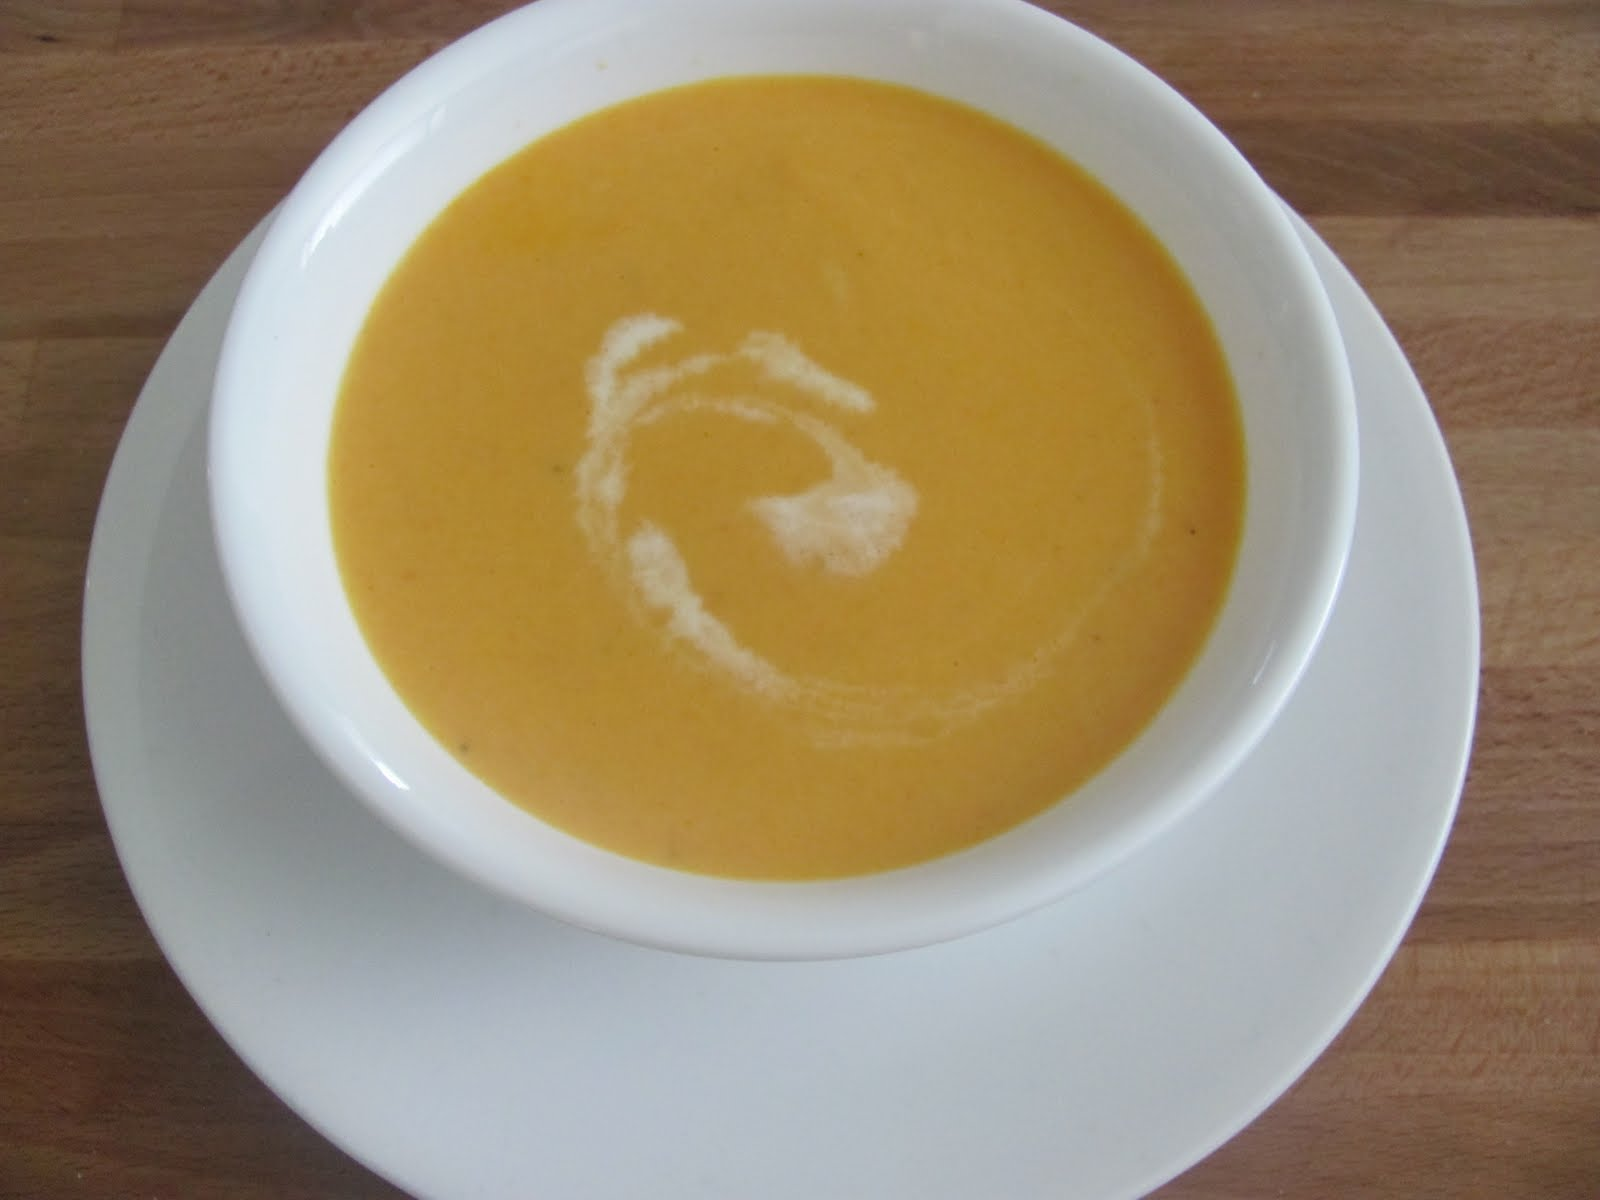 Living Life Happy - My Way...: A Simple Cream of Carrot Soup